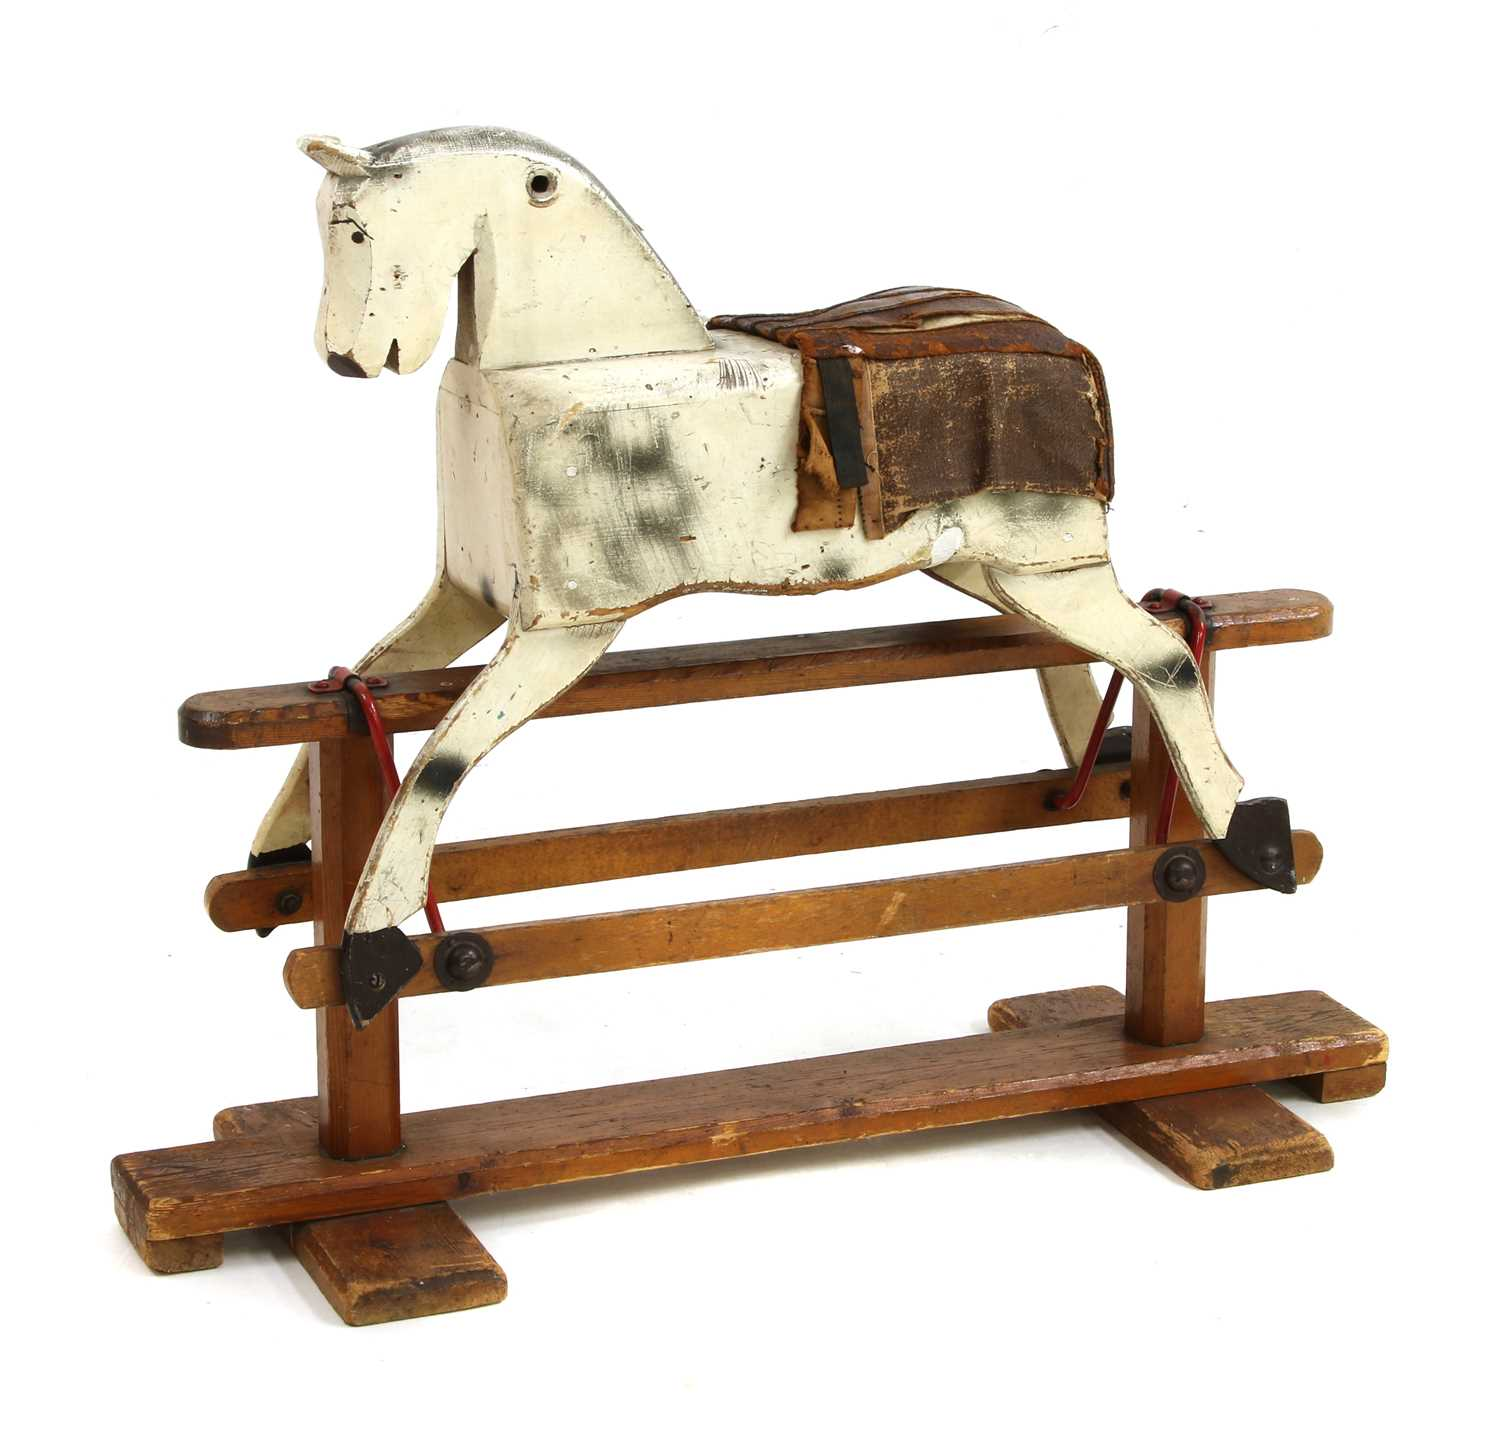 Lot 183 A Cream Painted Wooden Rocking Horse